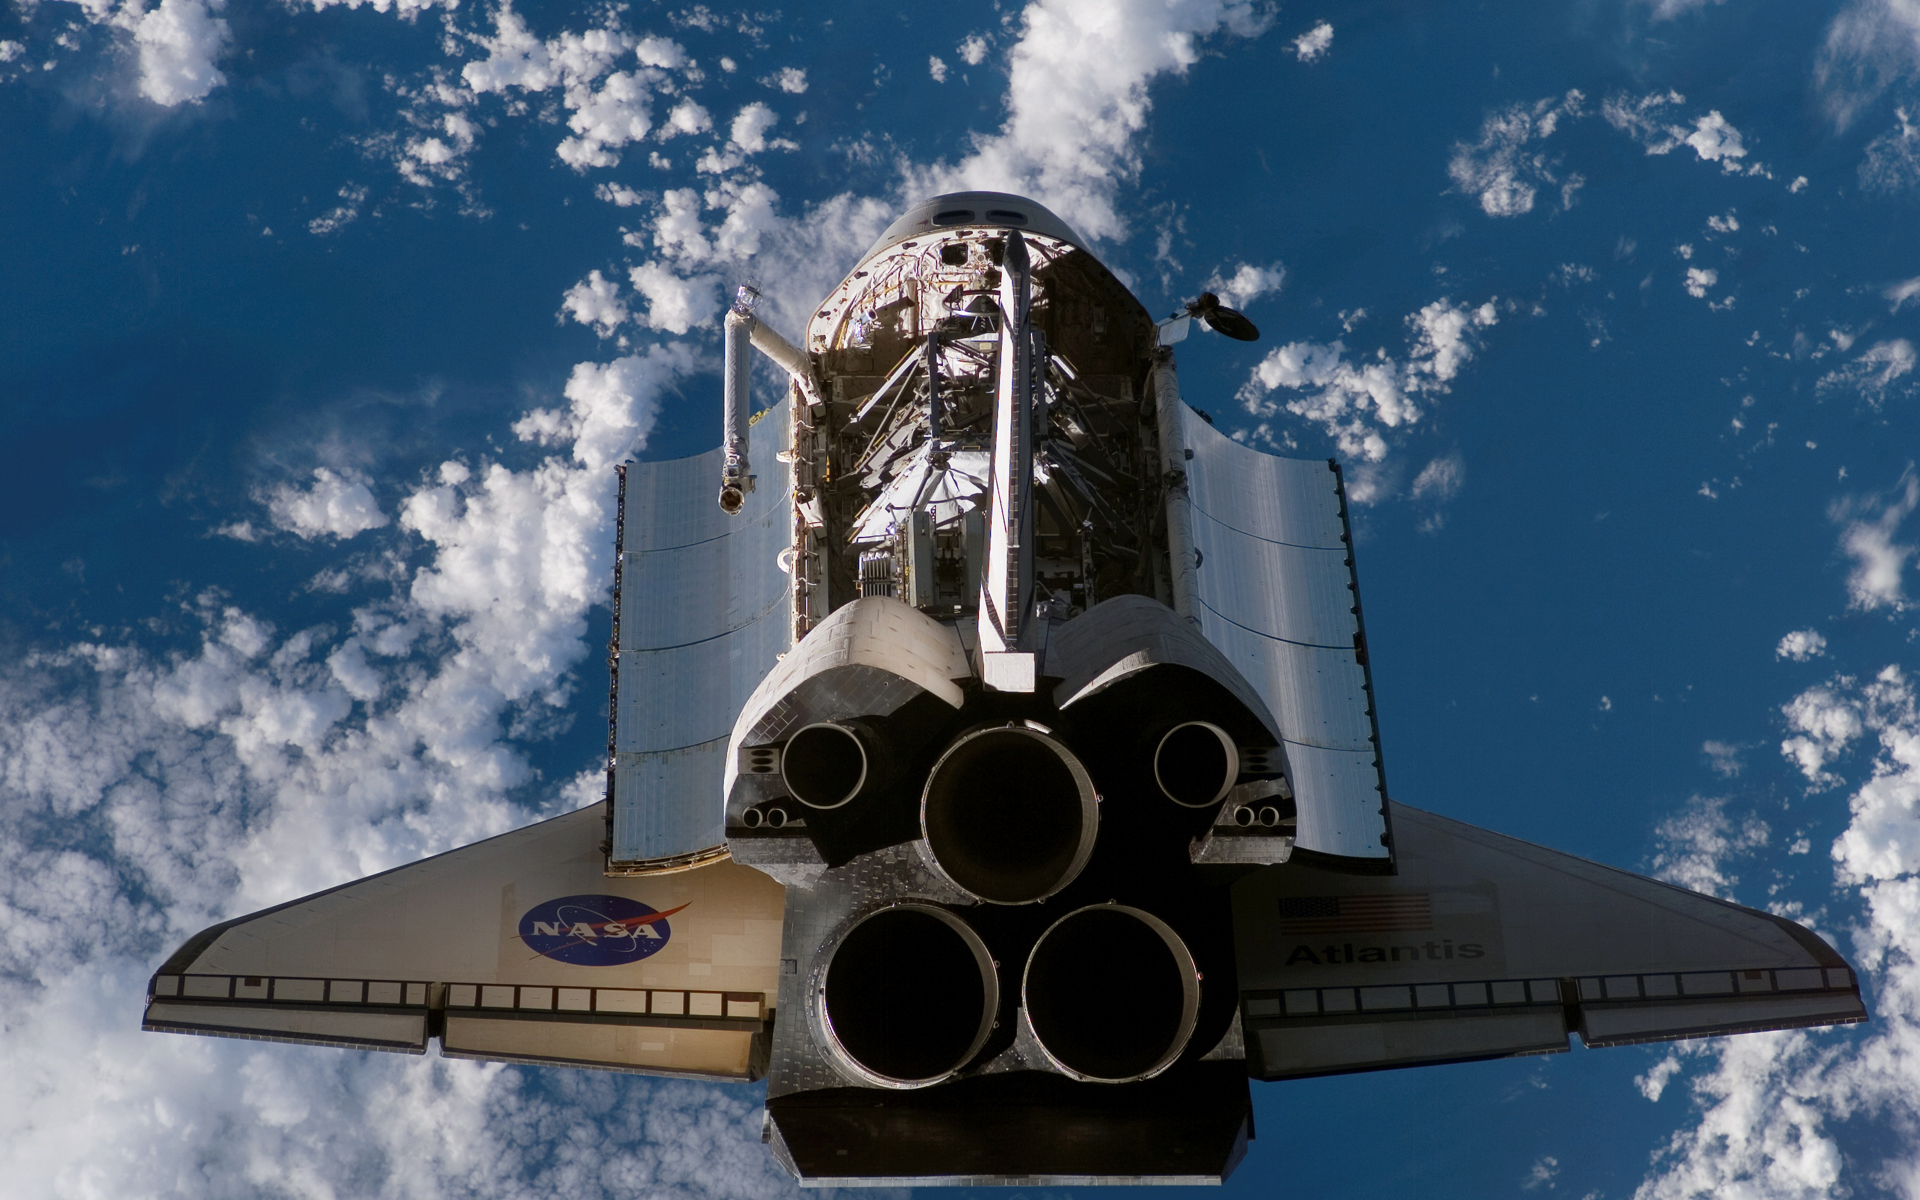 1920x1200 - Space Shuttle atlantis Wallpapers 15